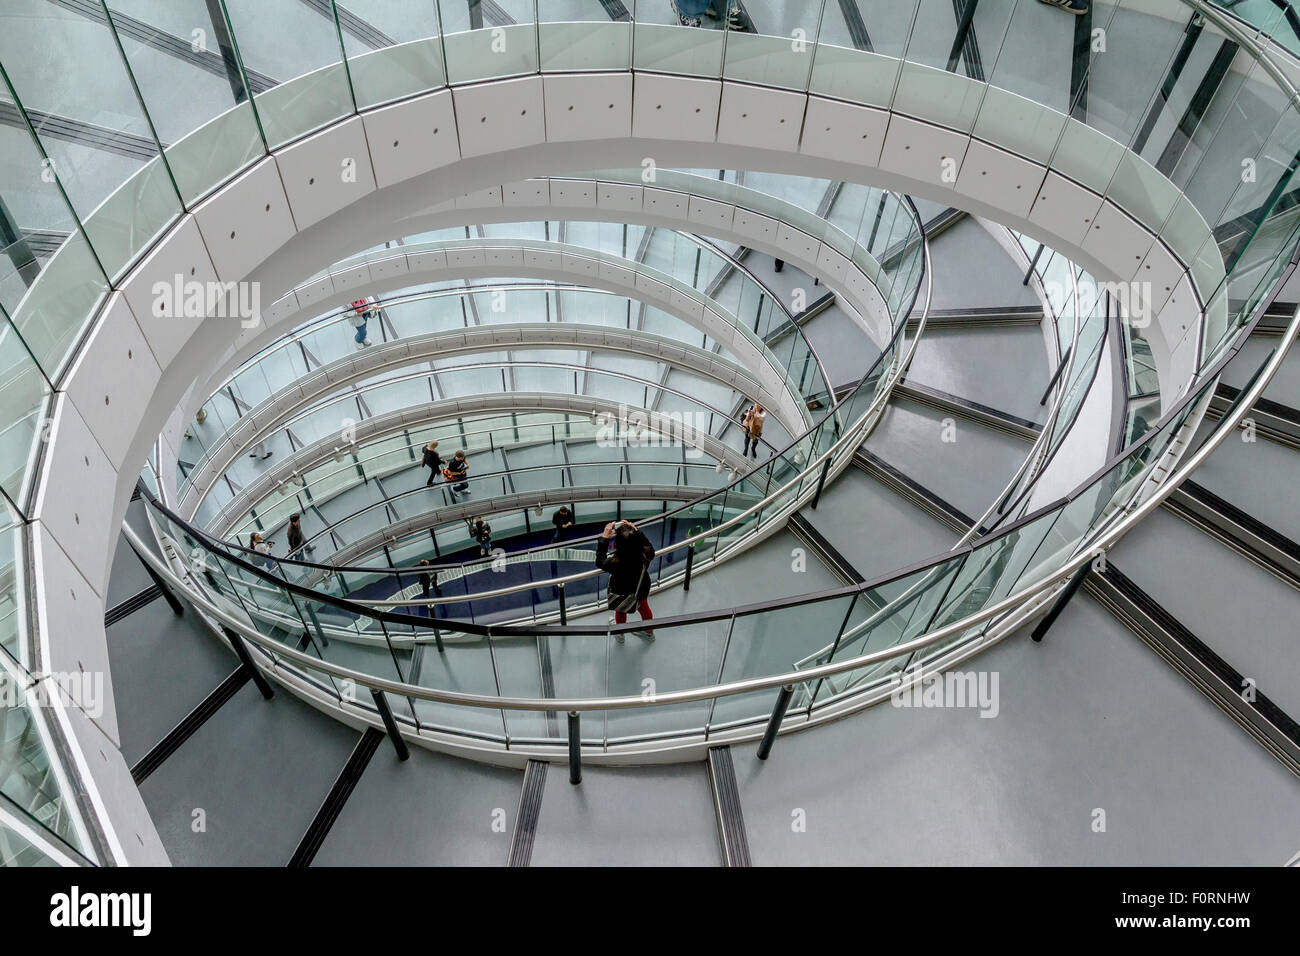 The interior staircase at City Hall which is the headquarters of the Greater London Authority (GLA) , London - Stock Image